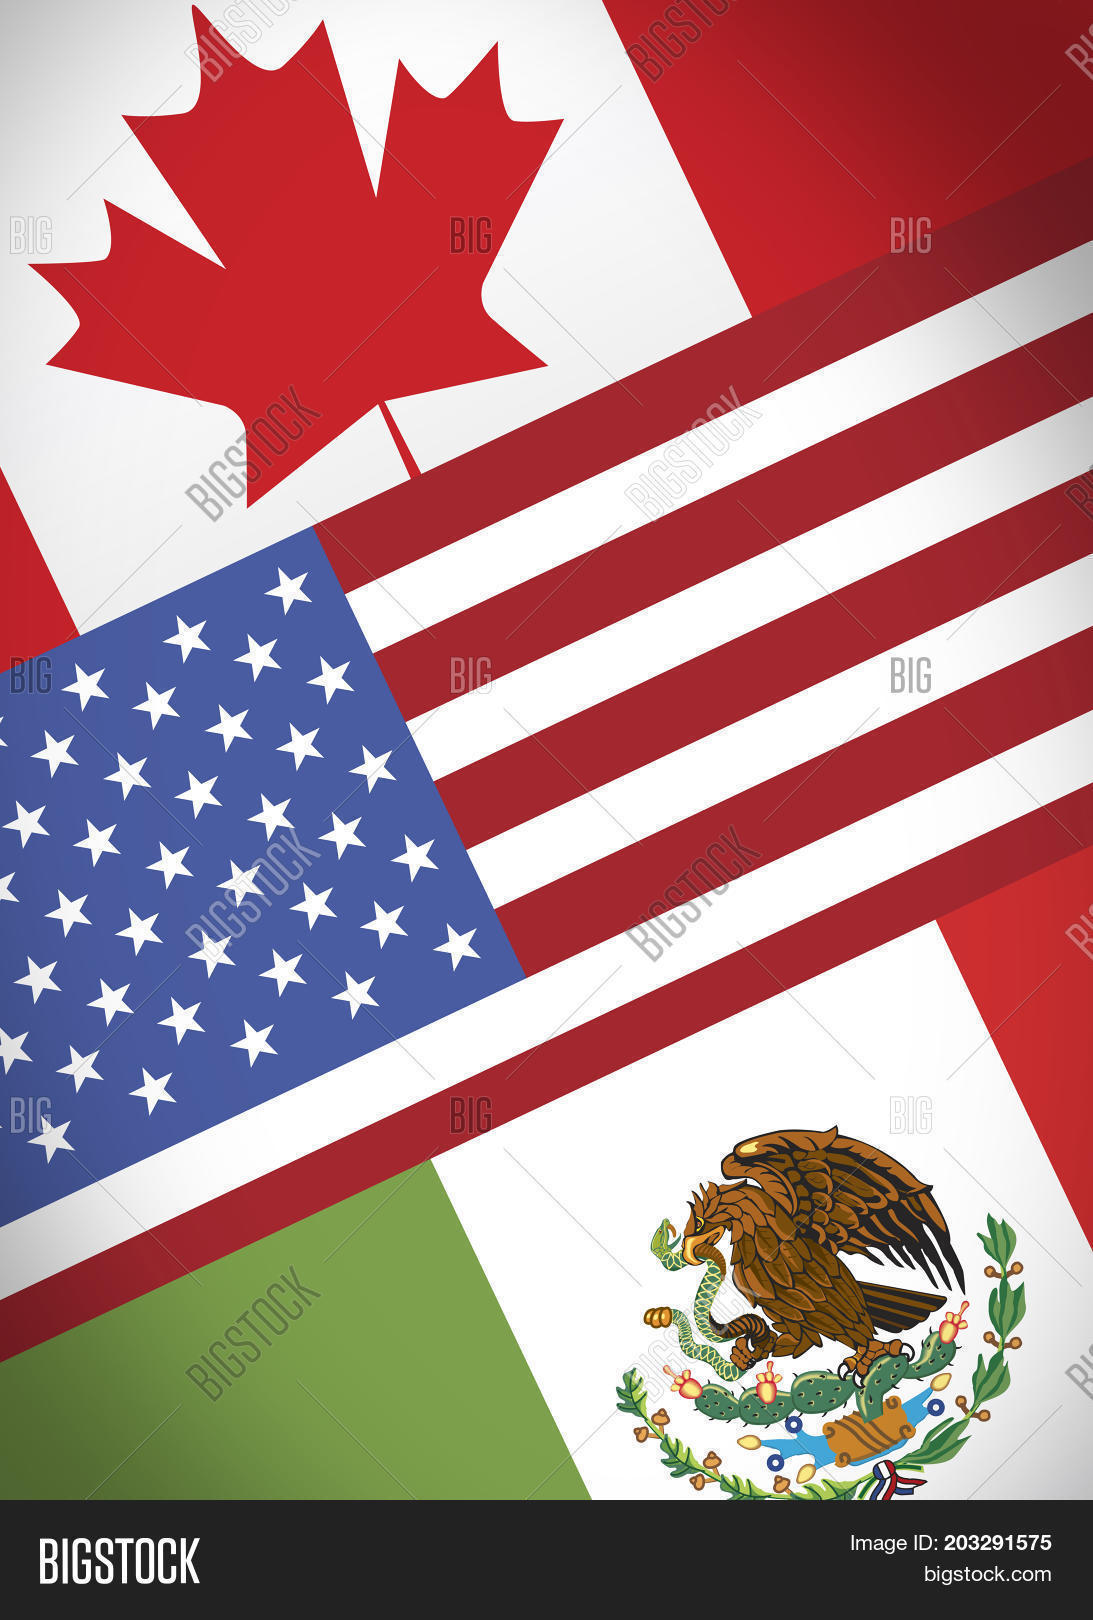 Nafta Economical Trade Image Photo Free Trial Bigstock